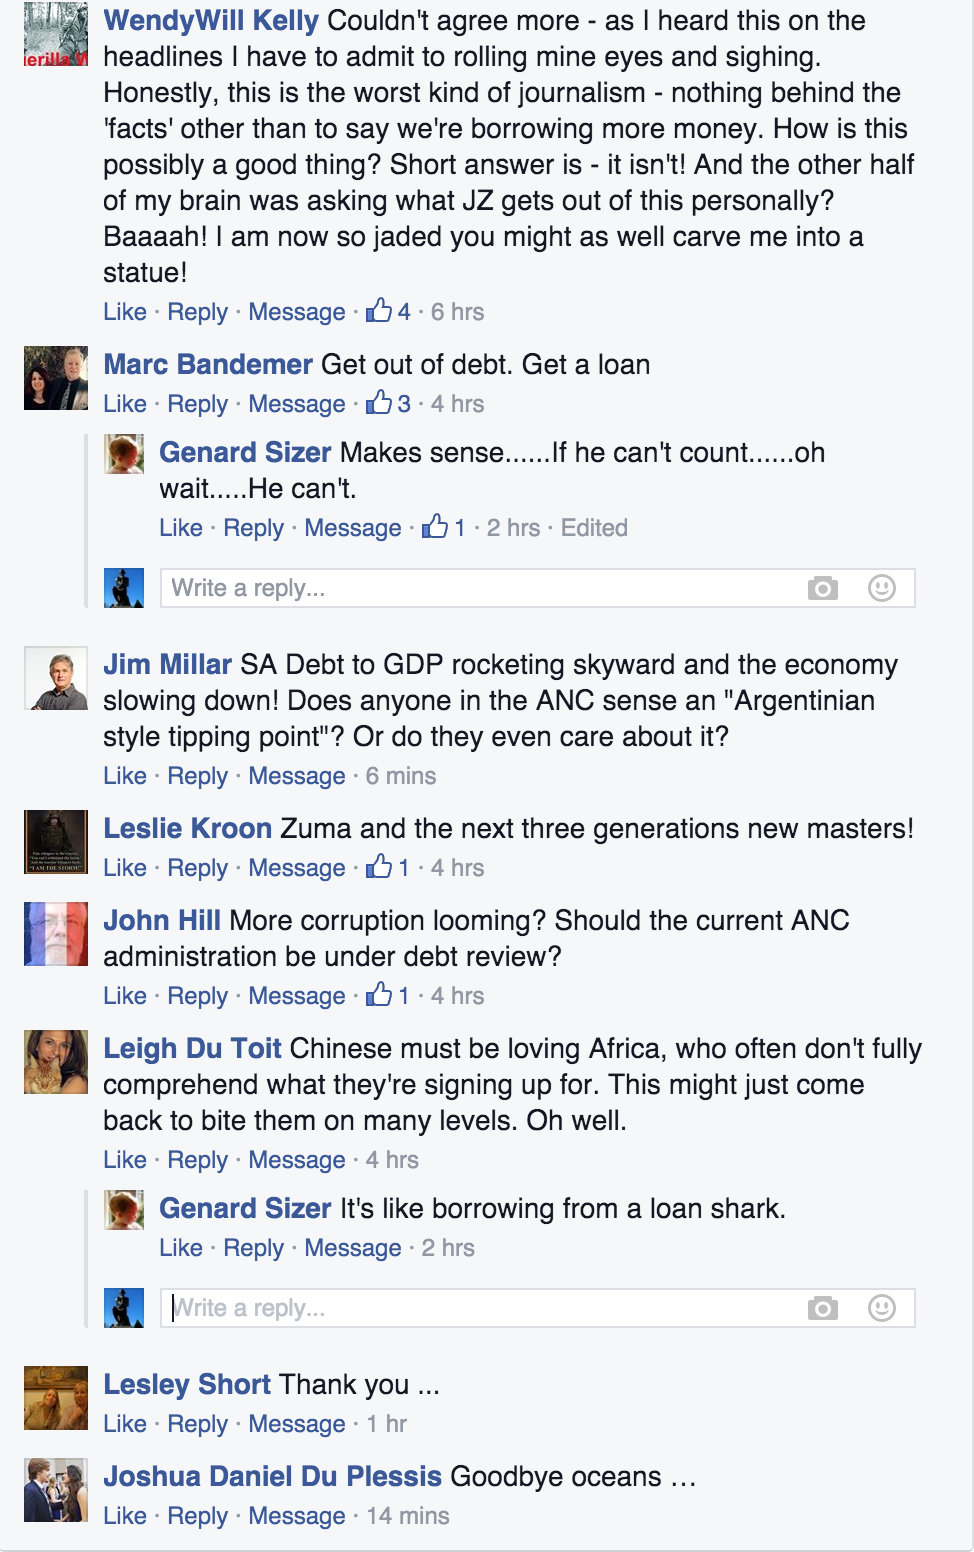 Comments on China loan